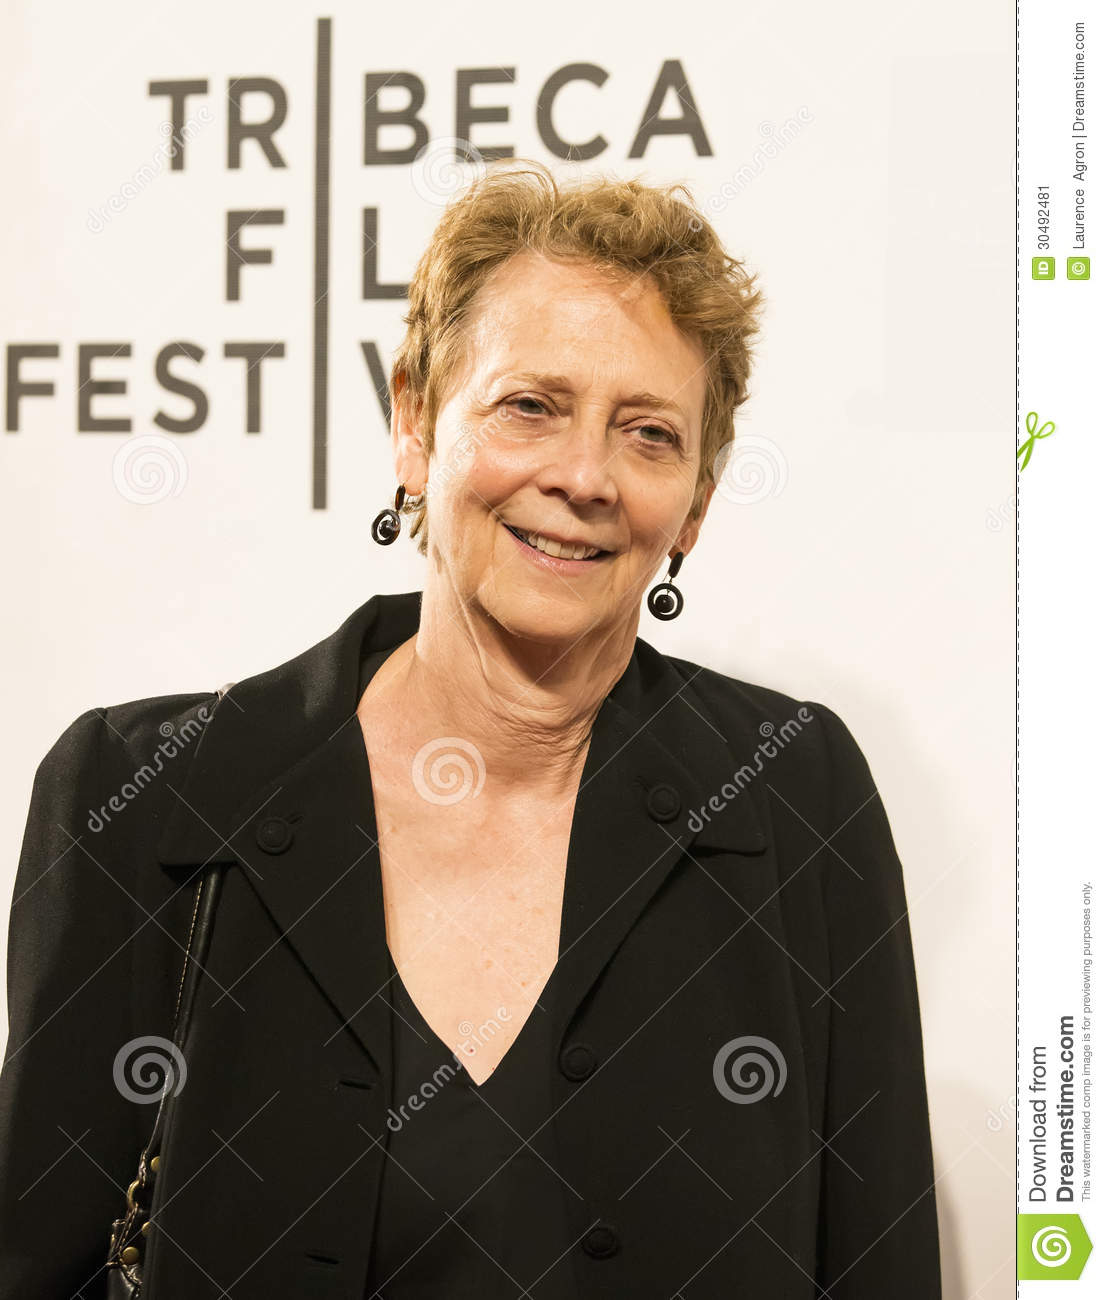 naomi foner net worthnaomi foner twitter, naomi foner cary fukunaga, naomi foner, наоми фонер, наоми фонер биография, naomi foner instagram, naomi foner net worth, naomi foner gyllenhaal photo, naomi foner images, naomi foner imdb, naomi foner and jamie lee curtis, naomi foner divorce, naomi foner young, naomi foner interview, naomi foner stephen gyllenhaal, naomi foner height, naomi foner pictures, naomi foner 2015, naomi foner address, naomi foner biography